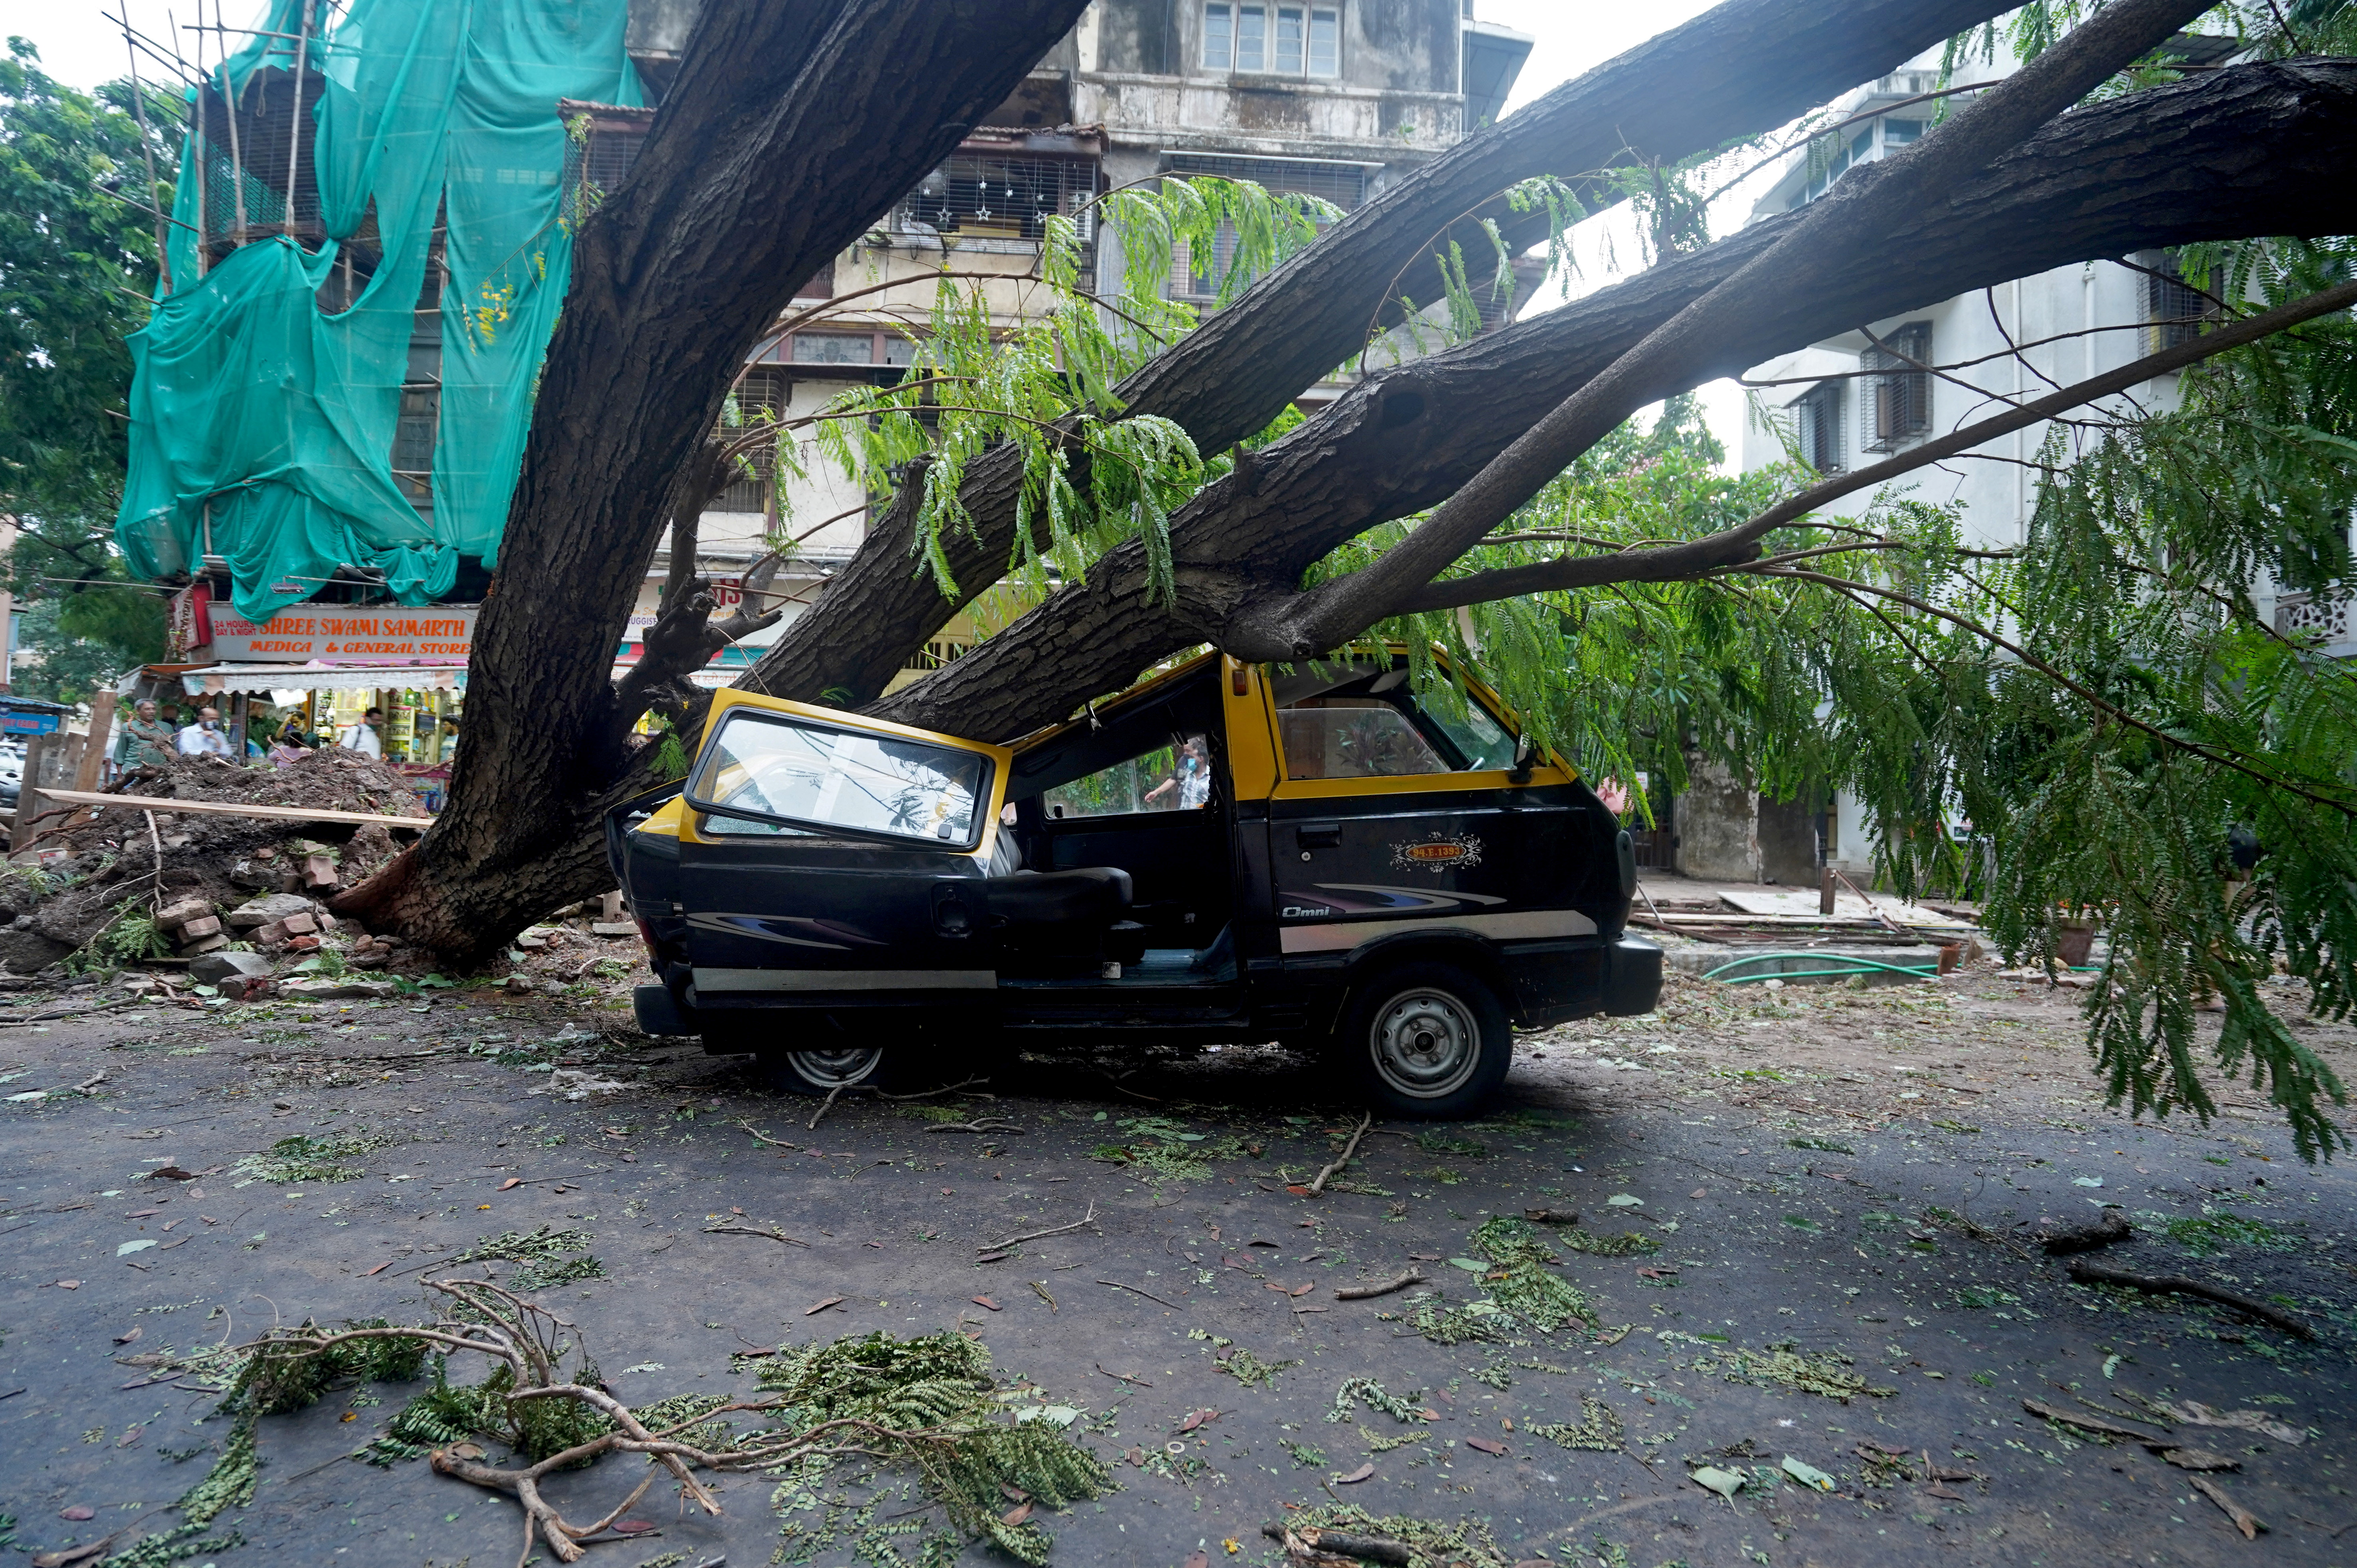 A damaged vehicle is seen under a fallen tree on a road after heavy winds caused by Cyclone Tauktae, in Mumbai, India, May 18, 2021. REUTERS/Hemanshi Kamani     TPX IMAGES OF THE DAY